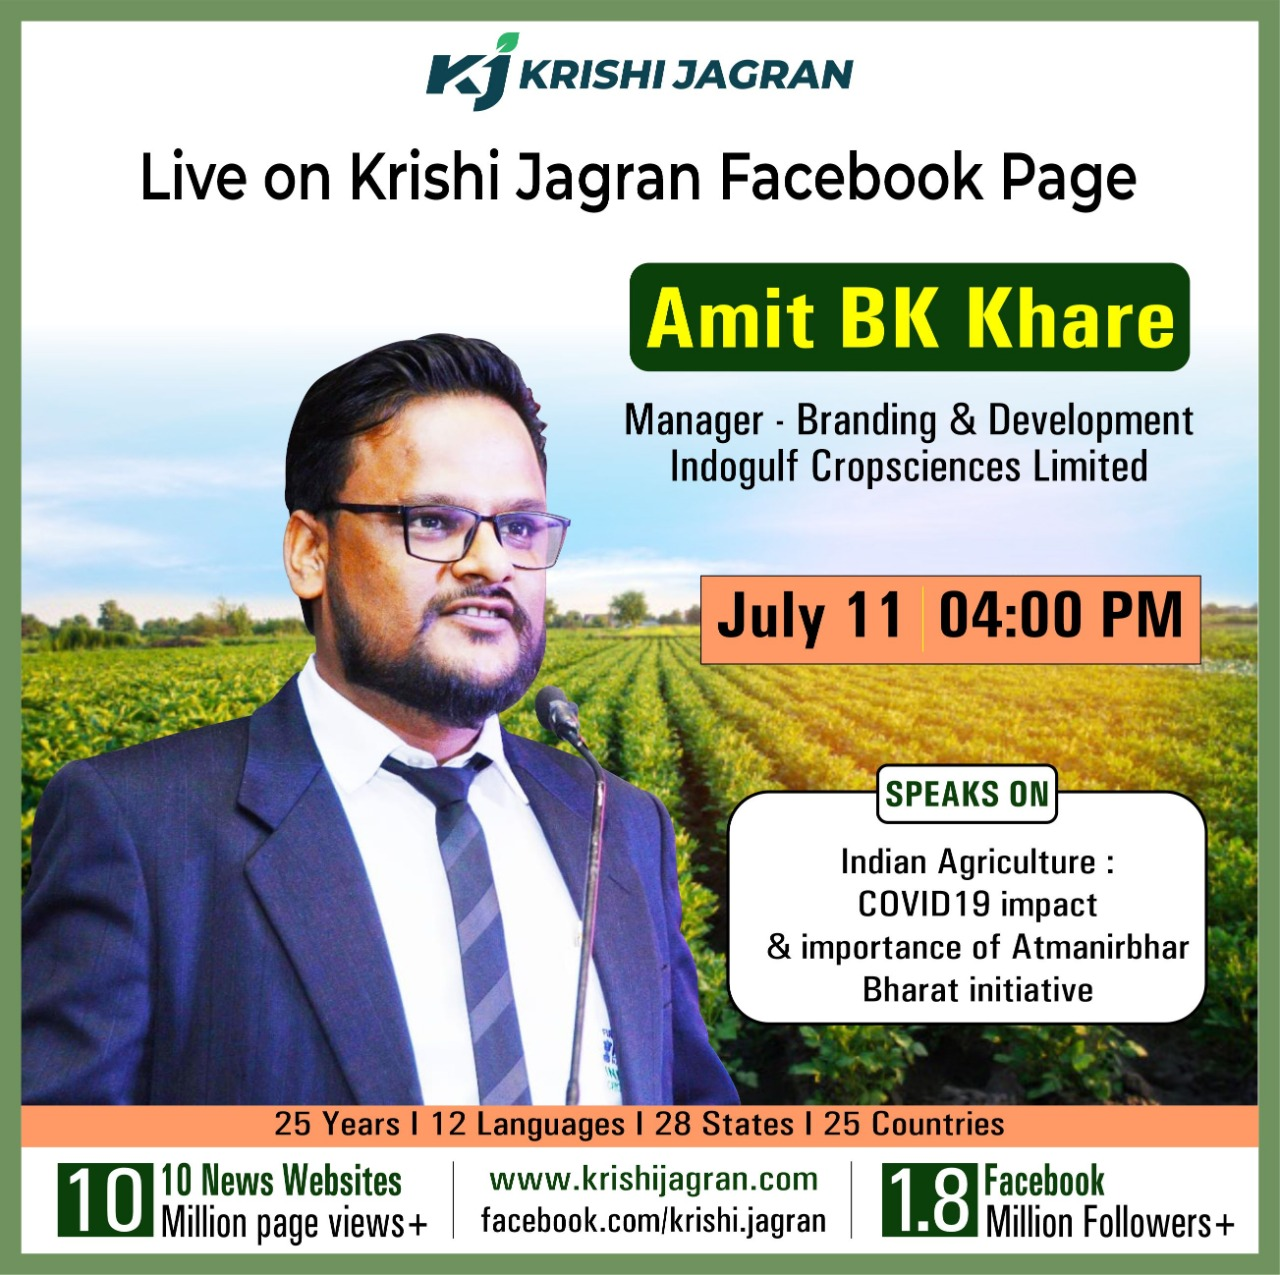 Amit BK Khare, Manager - Branding & Development Indogulf Cropsciences Limited